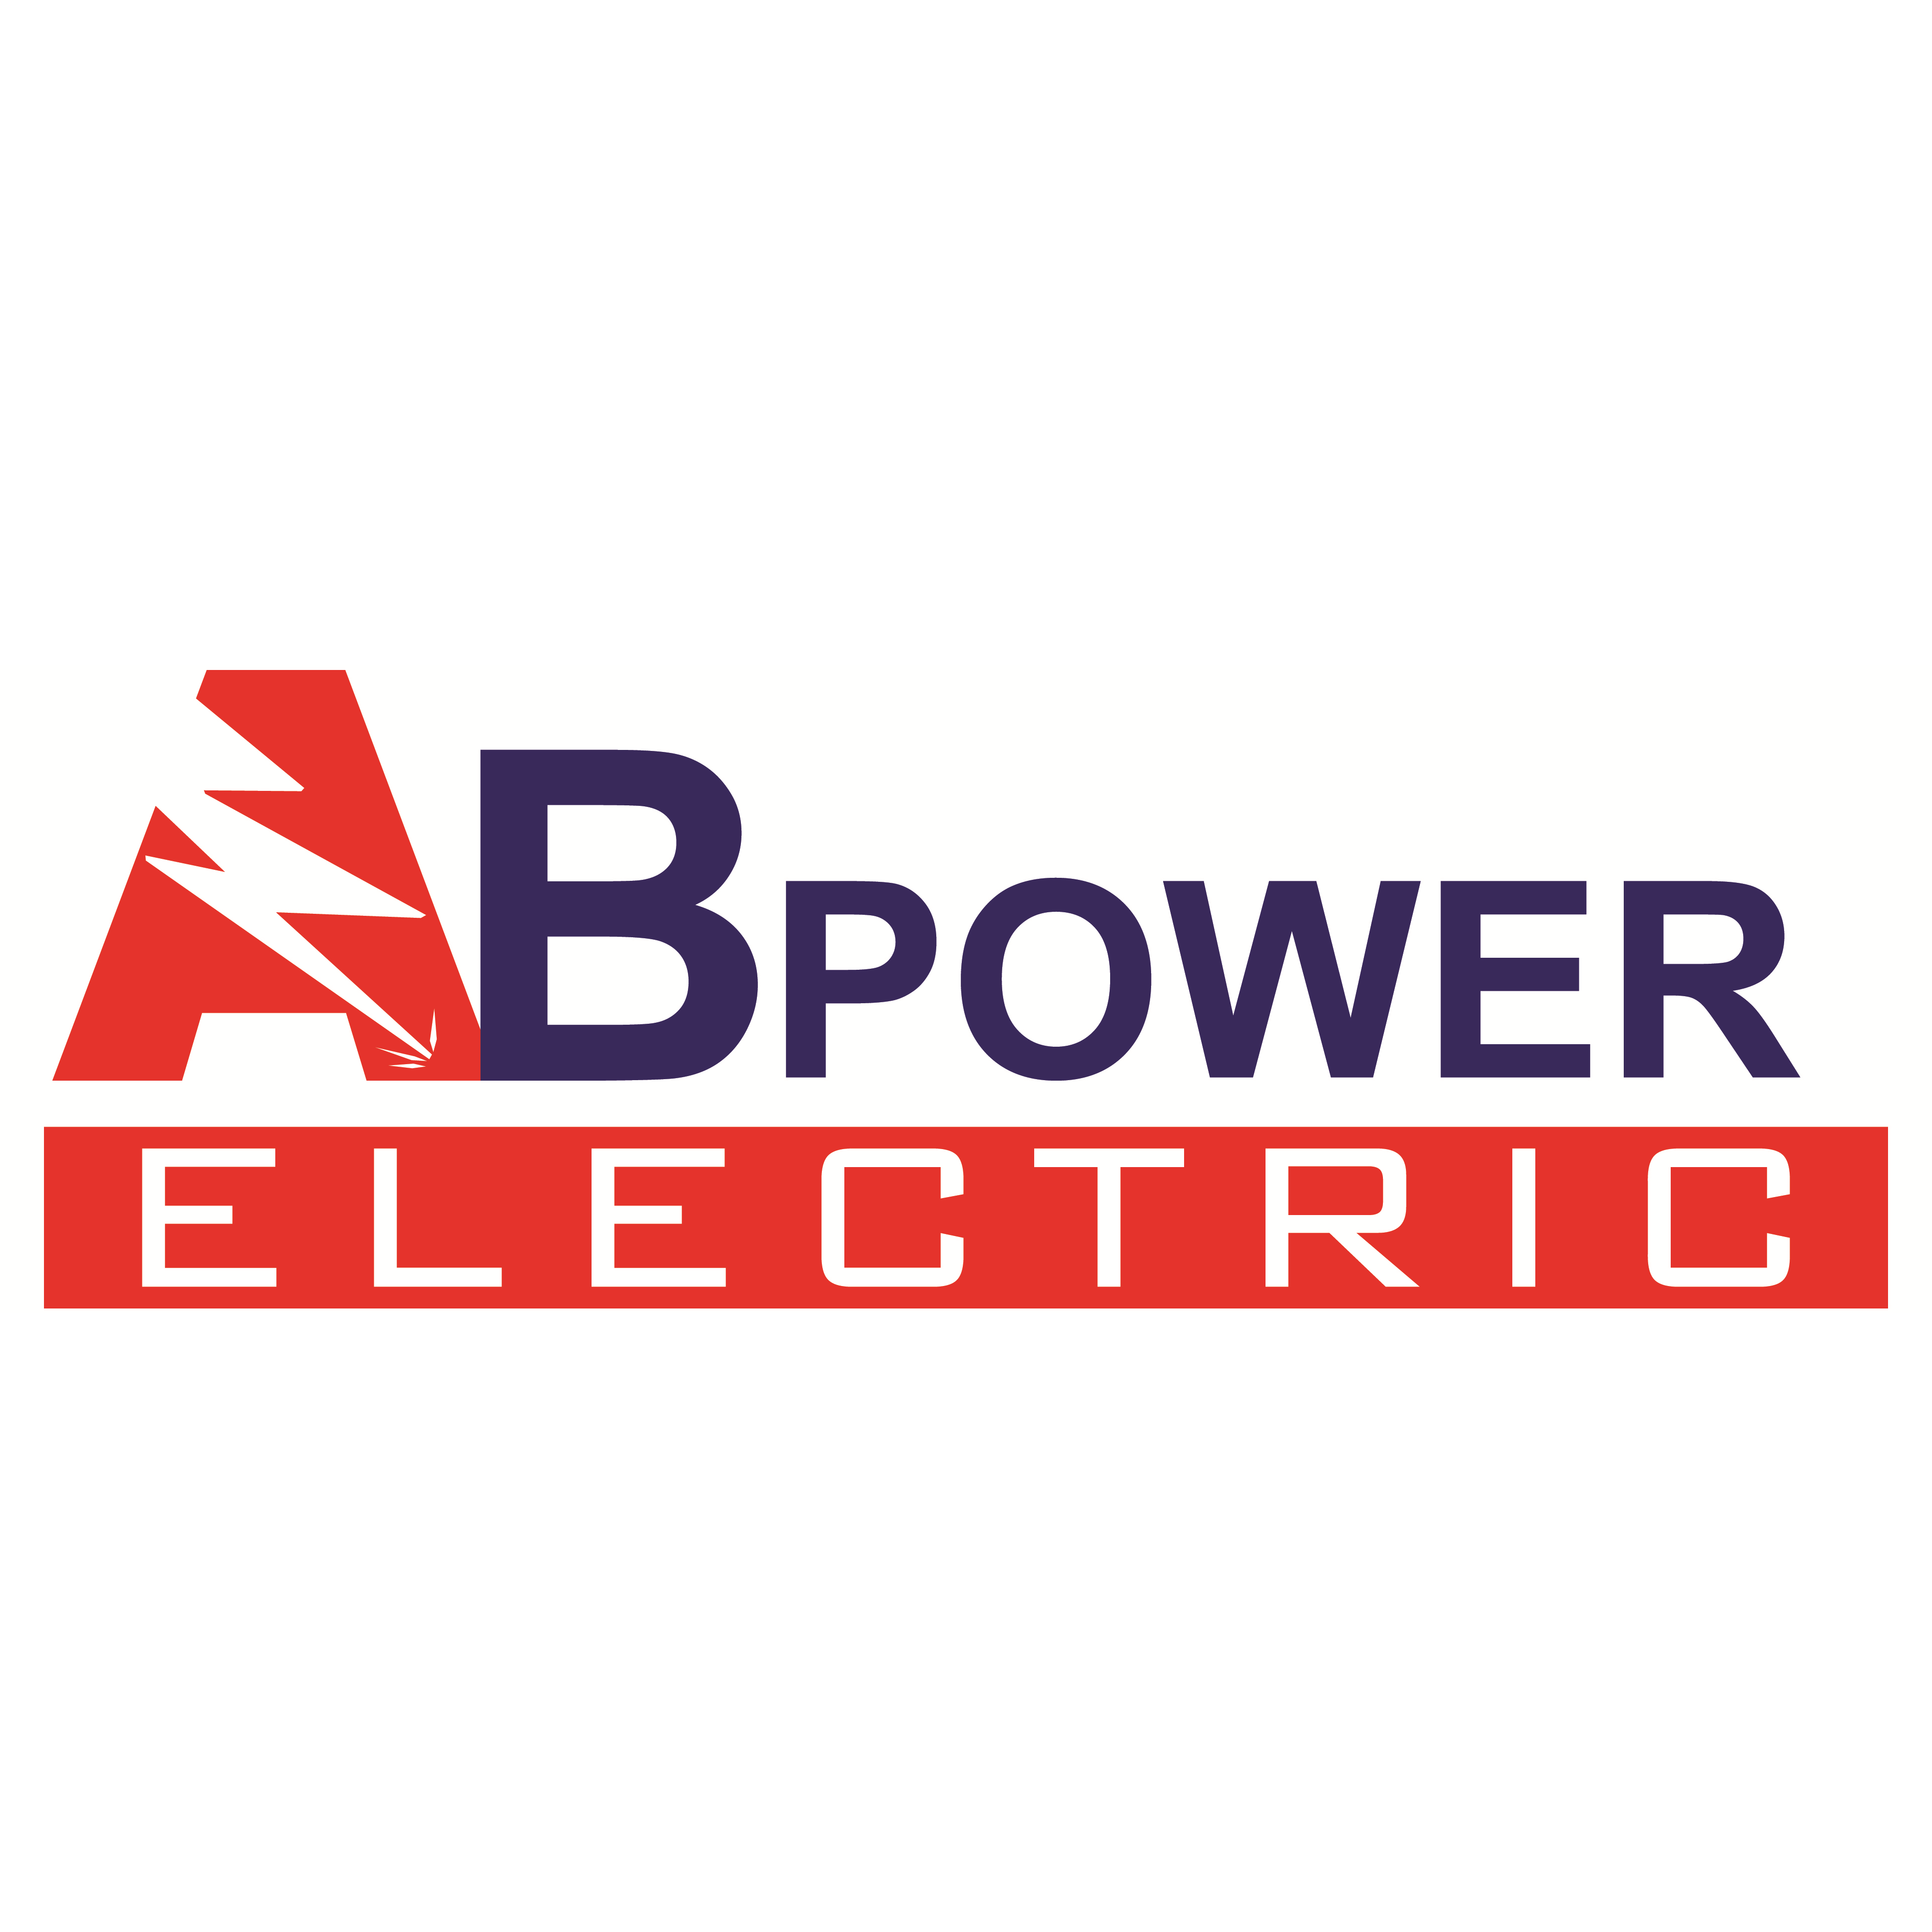 Ab Power Electric Corp Greenacres Florida Fl